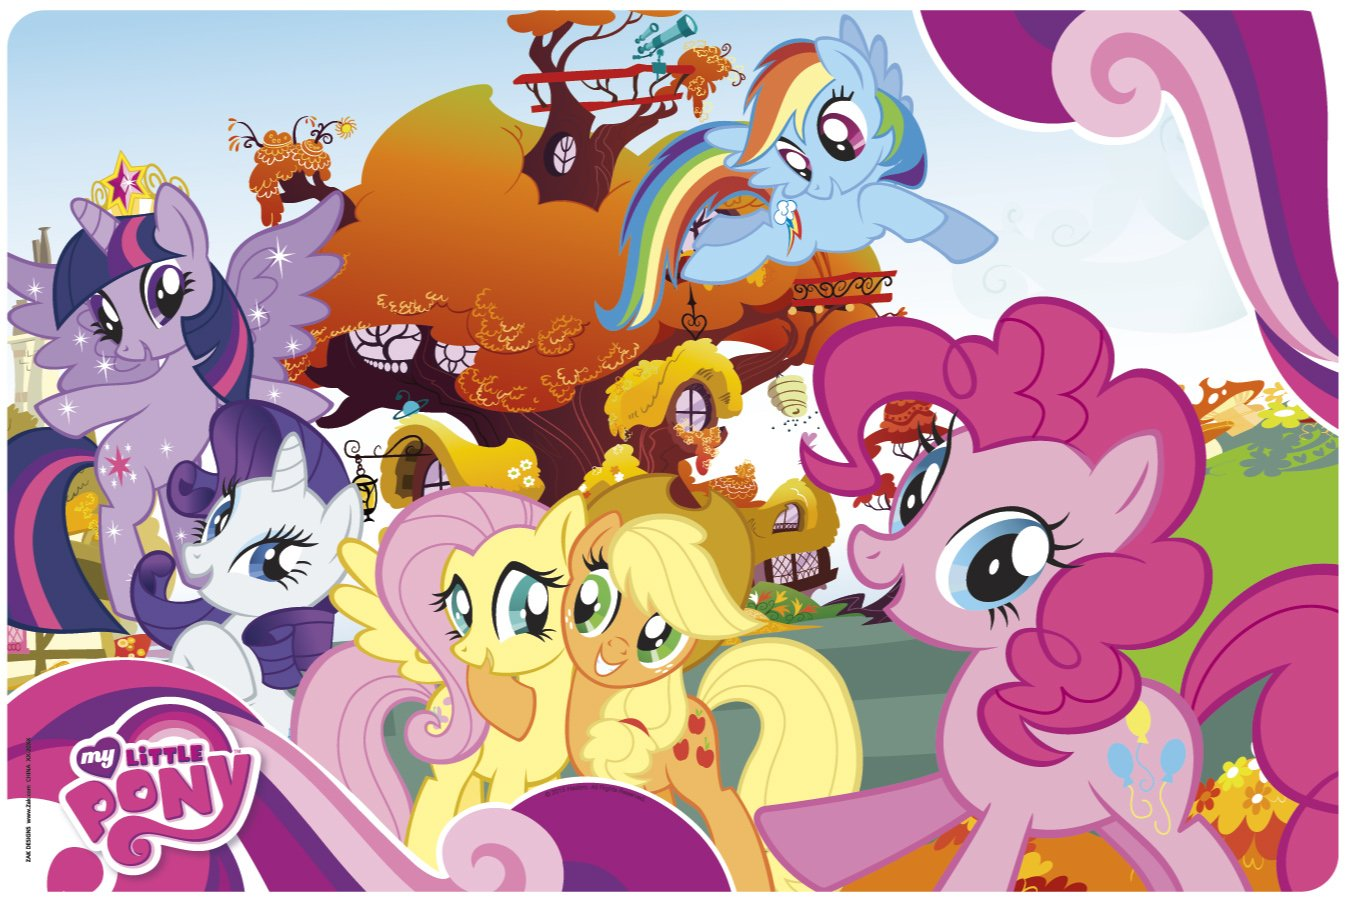 BPA-Free Plastic Item Set of 1 Multicolor MLPR-1300 4SGM Zak Designs Placemat with My Little Pony Graphics